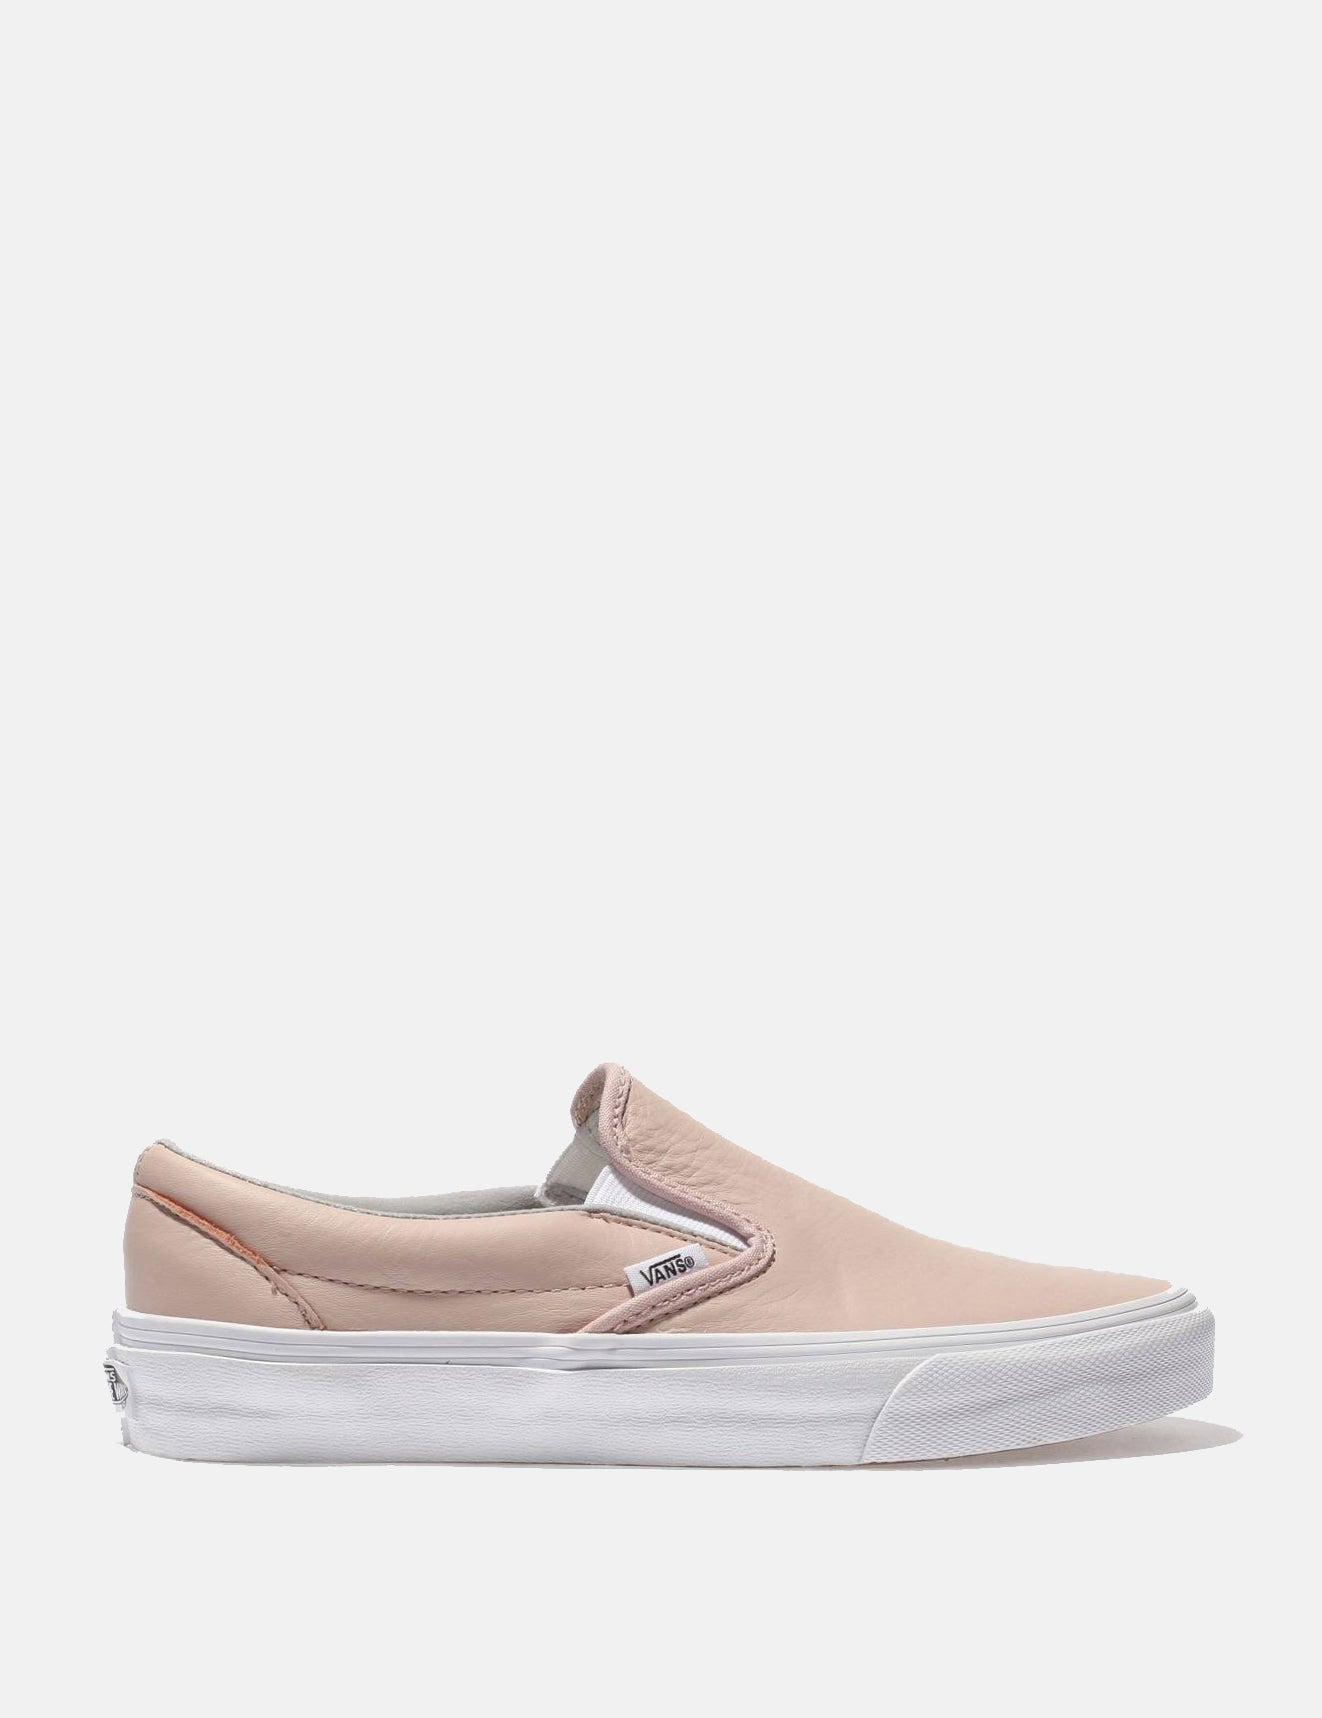 1fe77e5a38 Vans Classic Slip-On (Leather) - Oxford Evening Pink